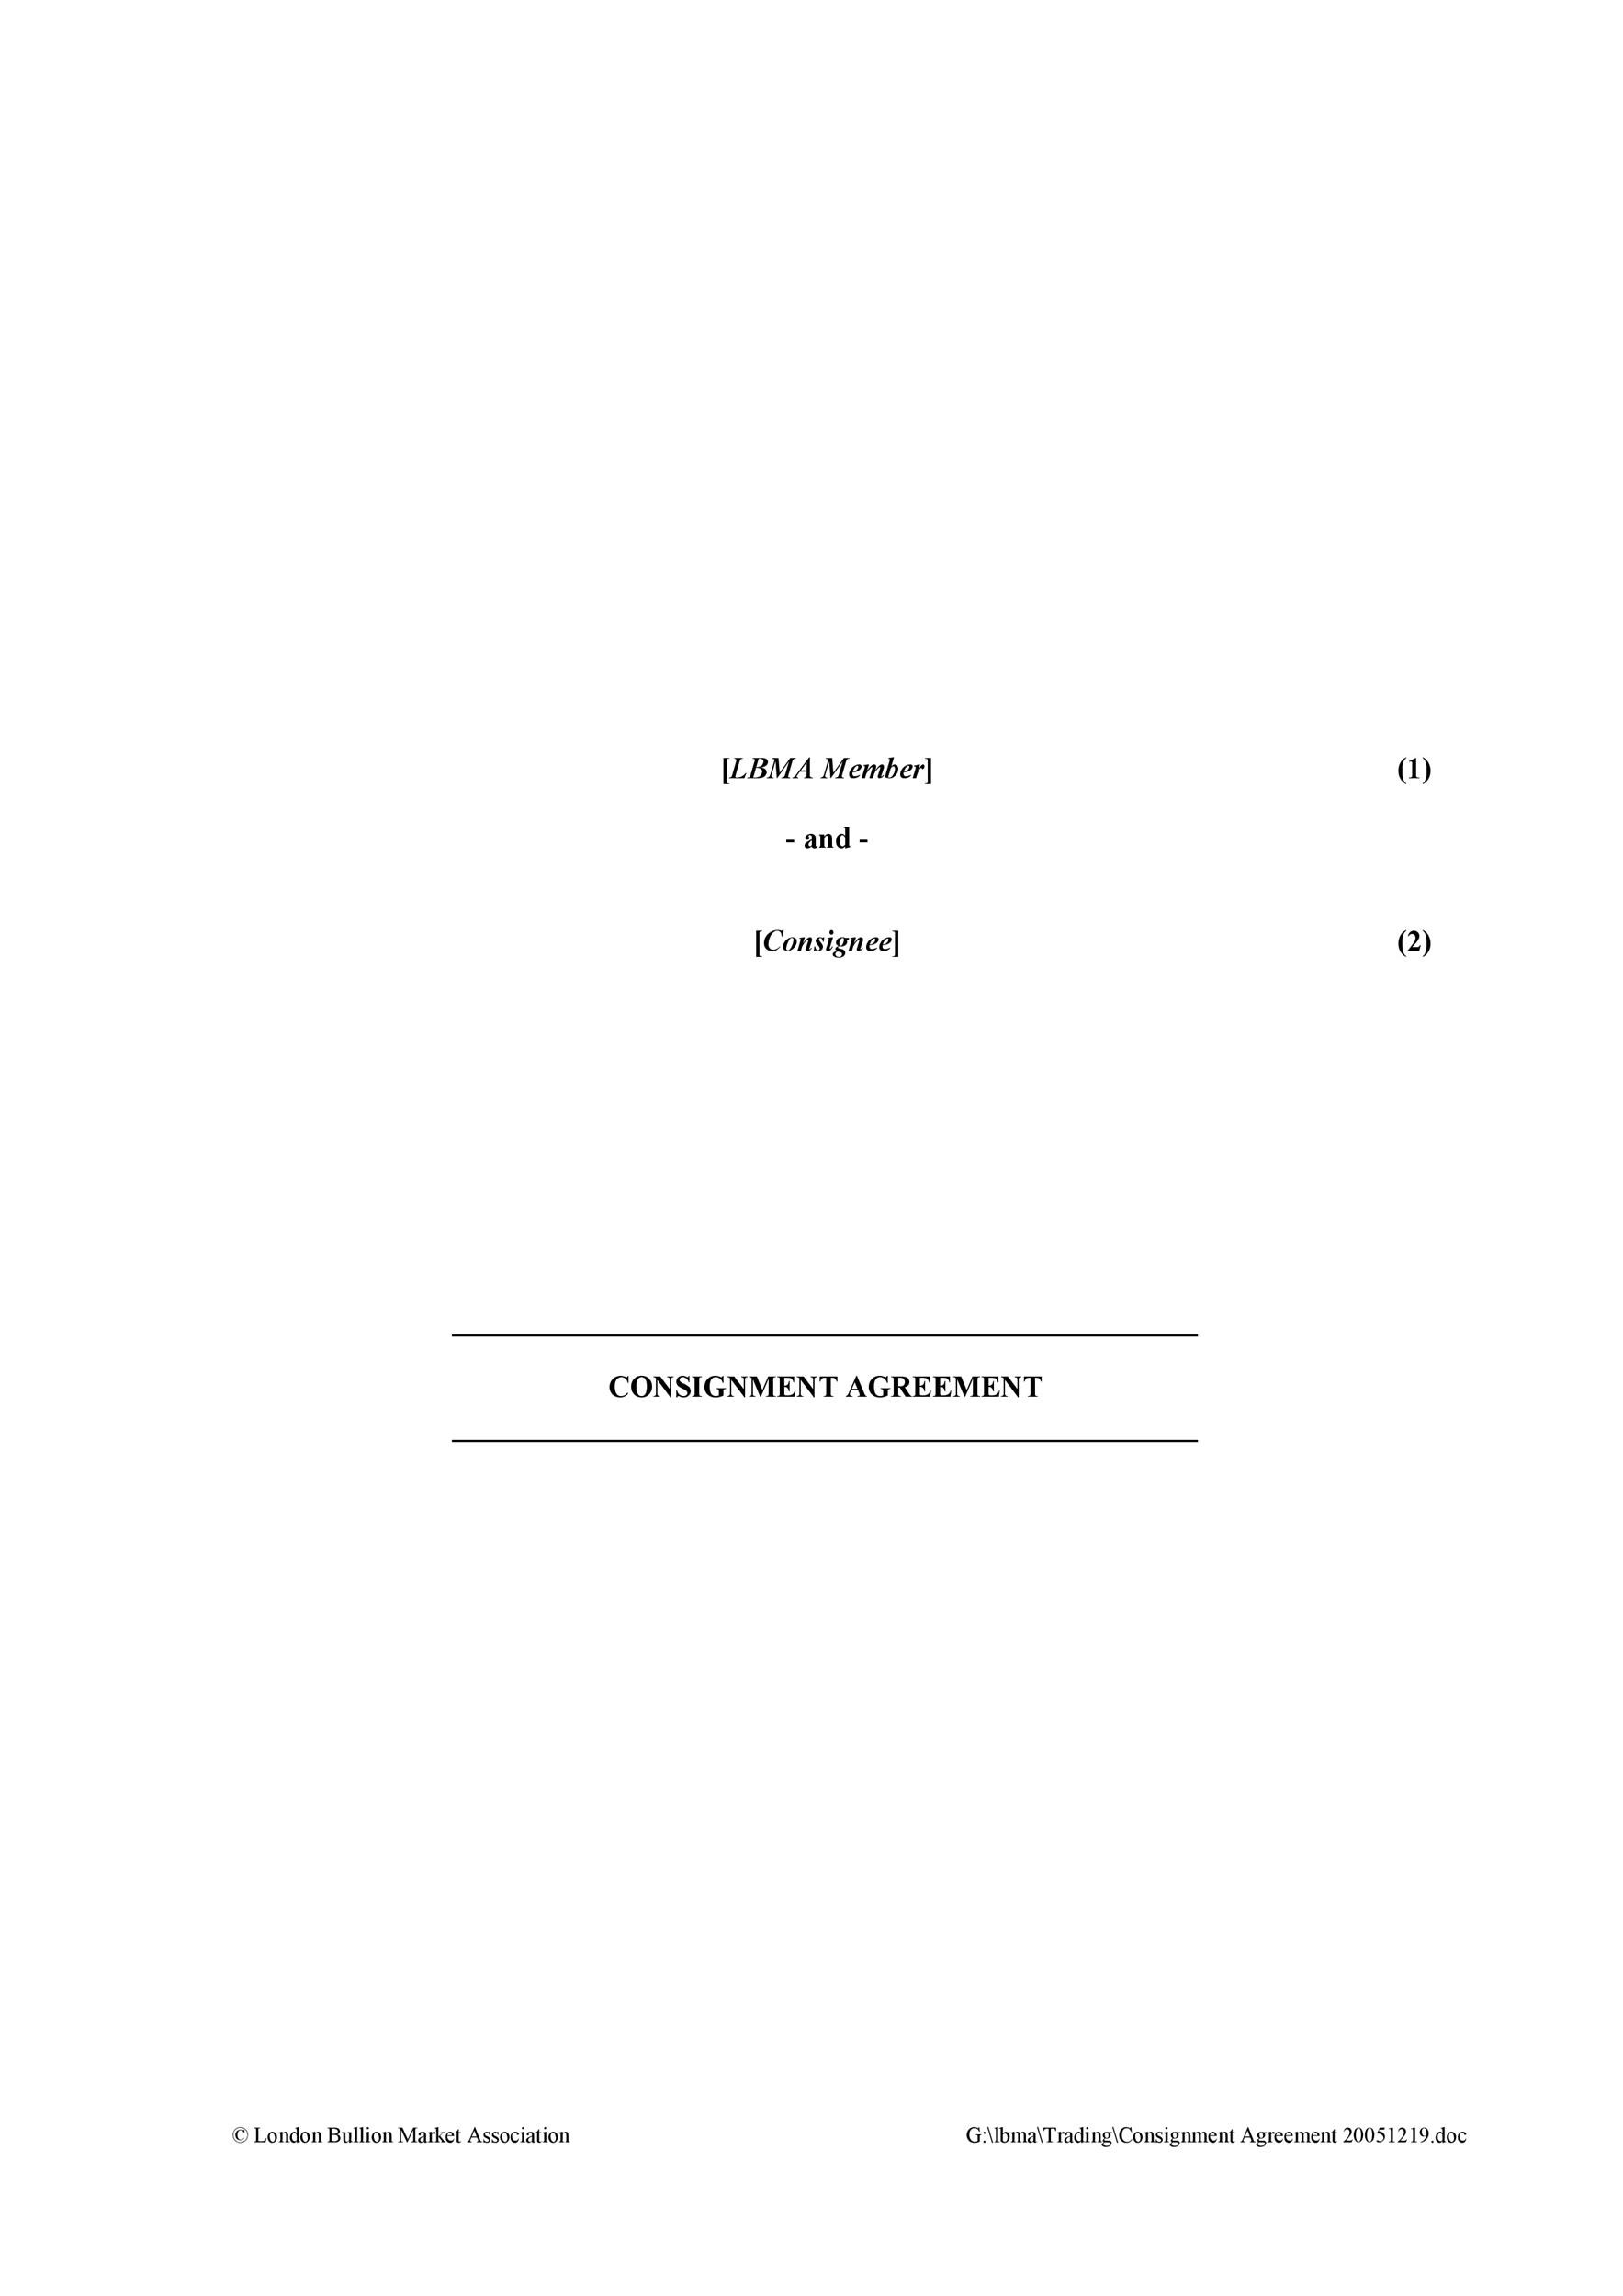 40+ Best Consignment Agreement Templates  Forms - Template Lab - Consignment Agreement Template